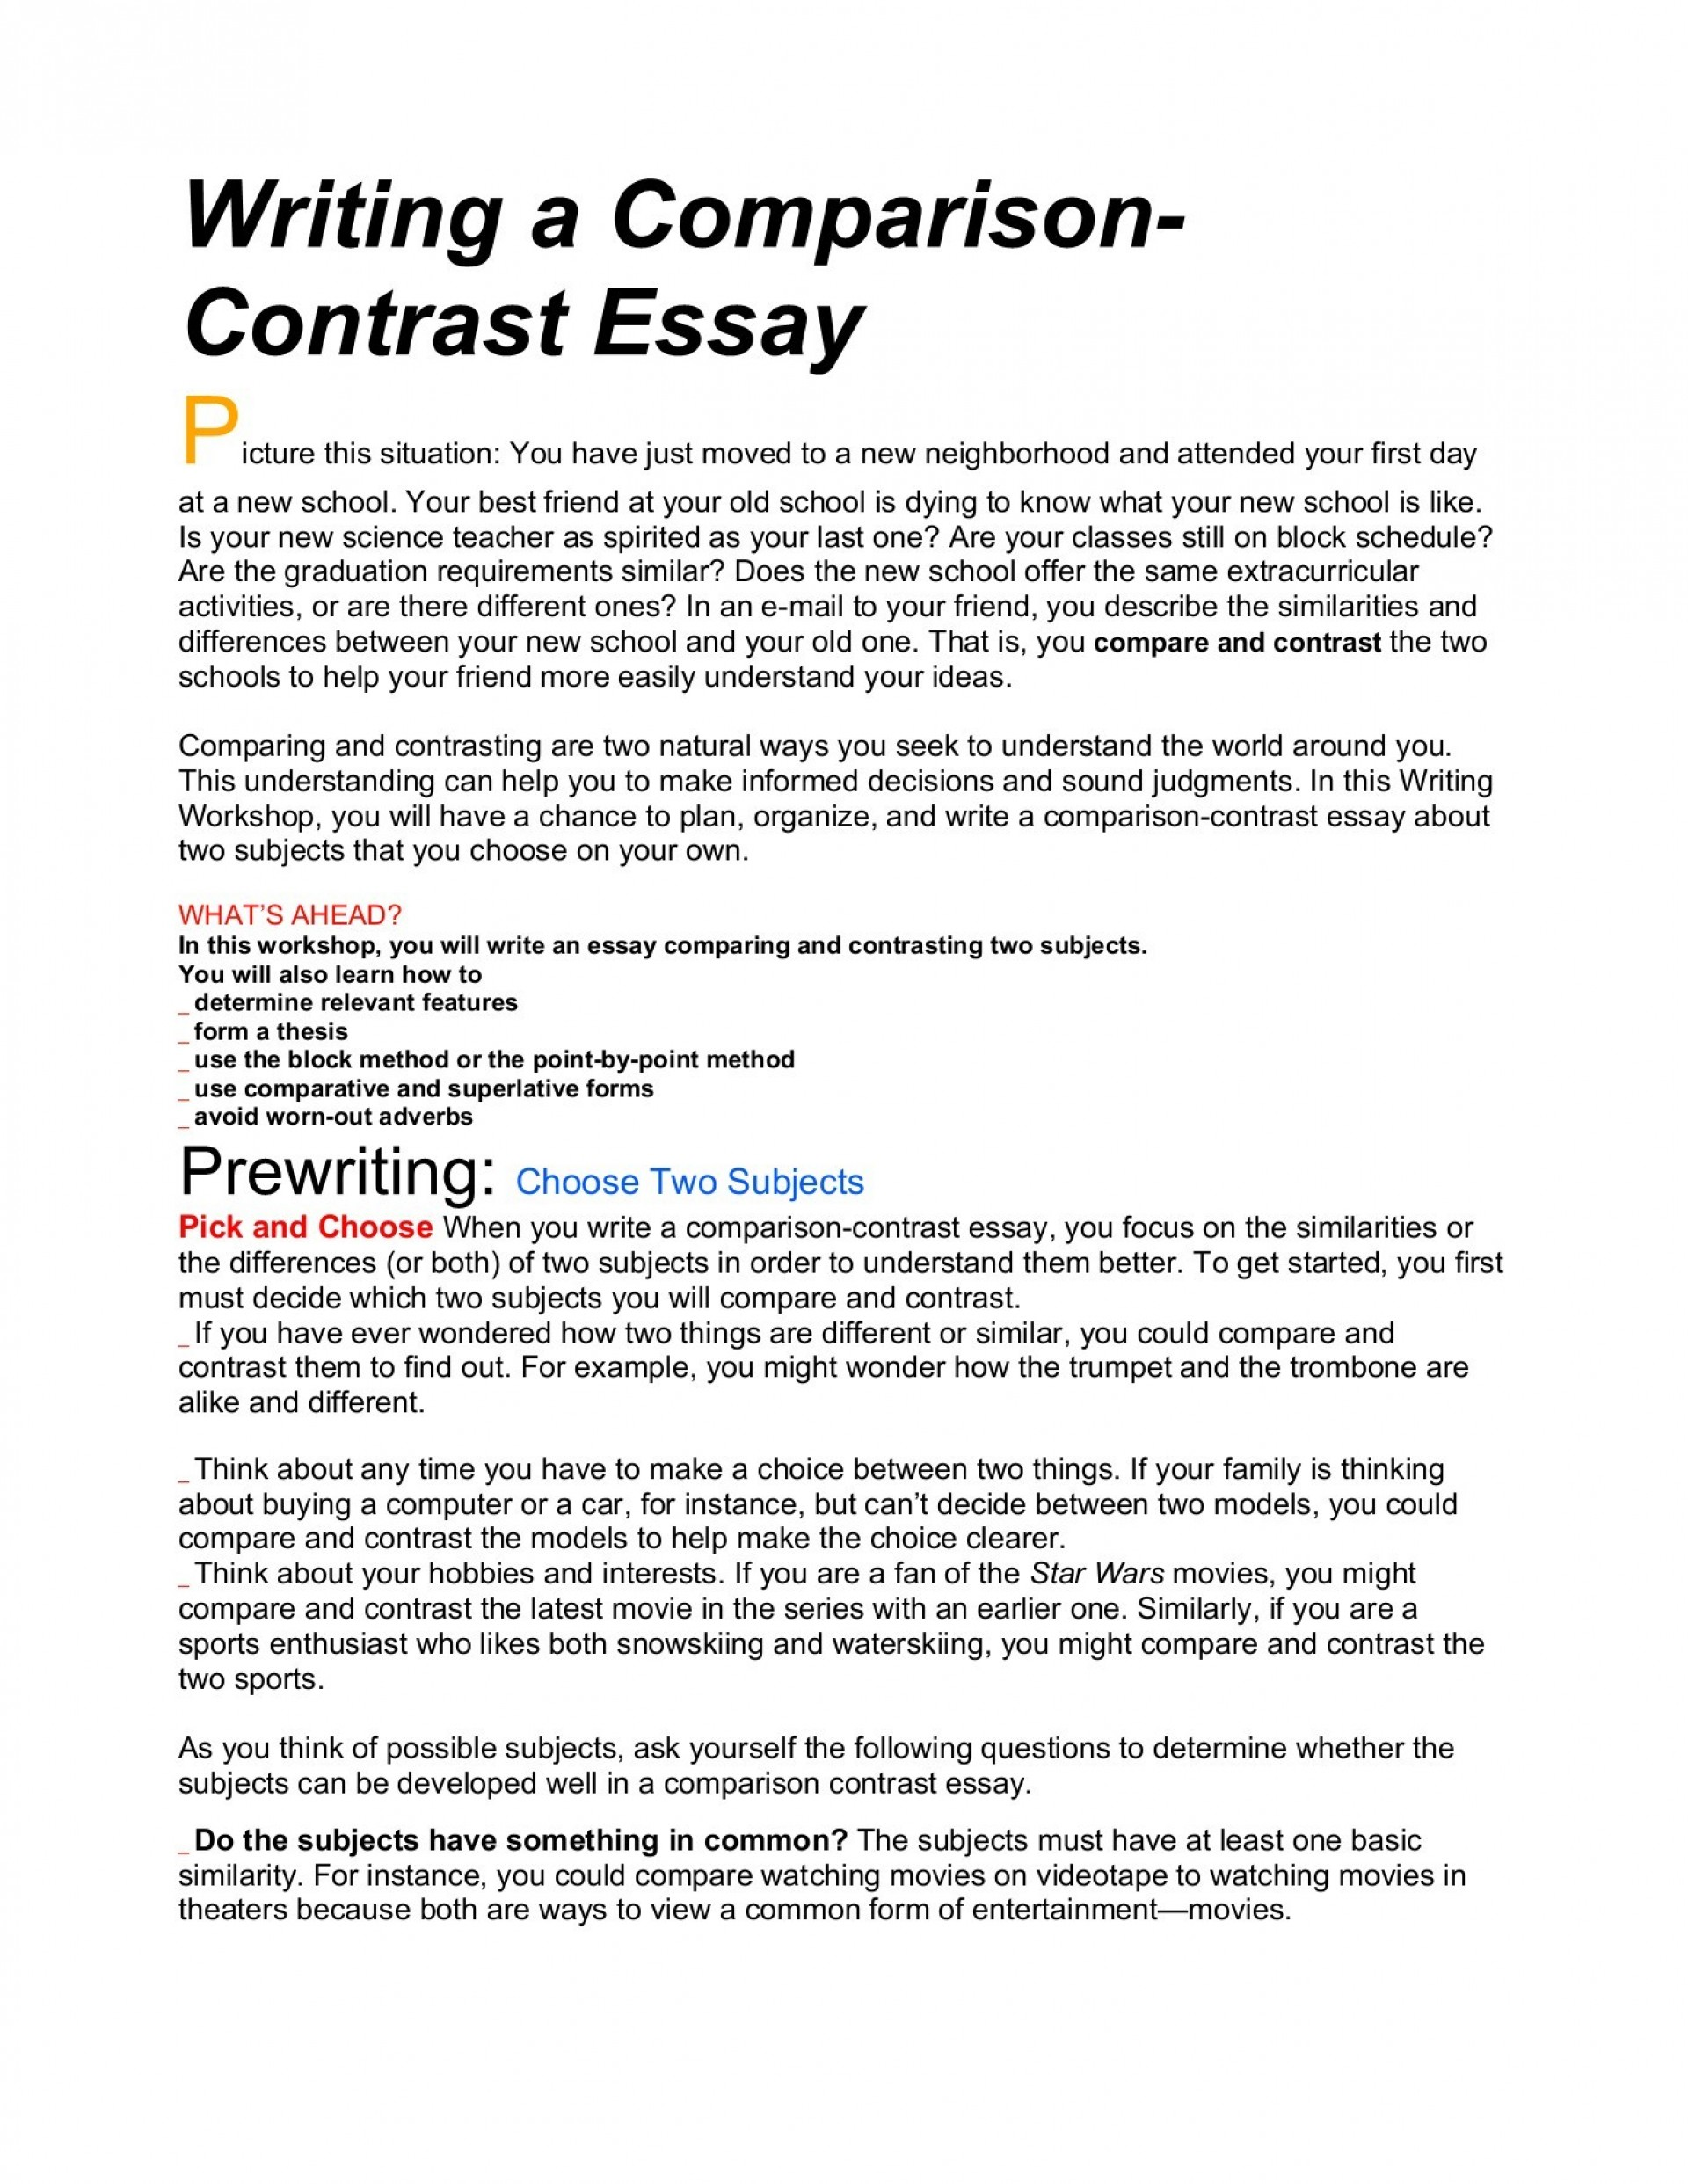 012 How To Conclude Compare And Contrast Essay Example Fantastic A Start Writing Comparison Write Begin 1920